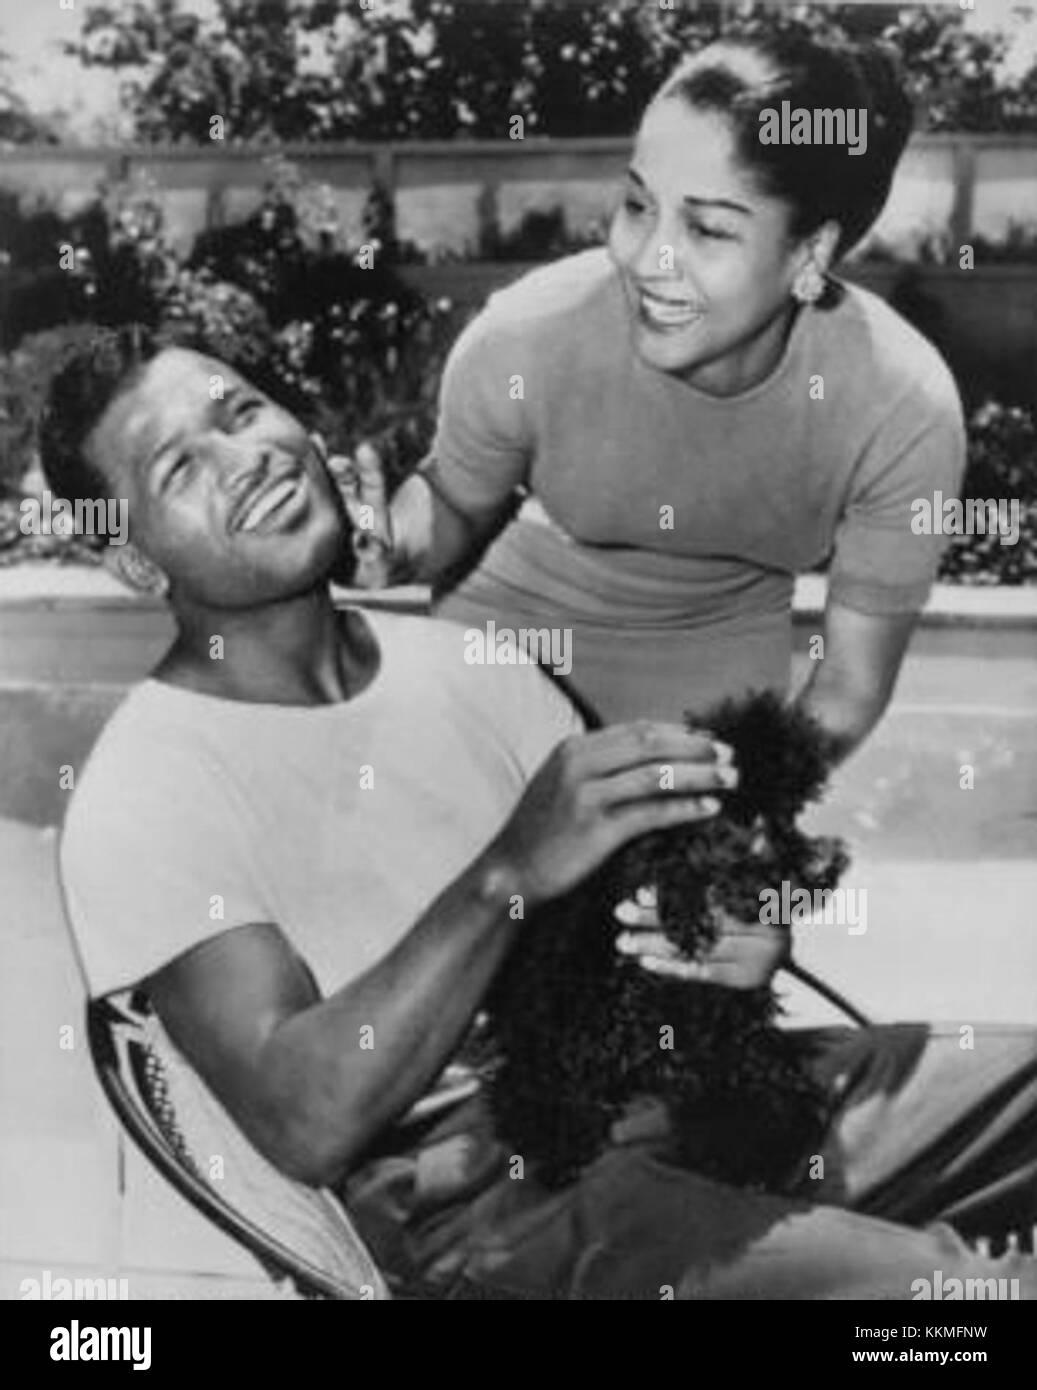 [Image: sugar-ray-robinson-with-wife-1956-KKMFNW.jpg]